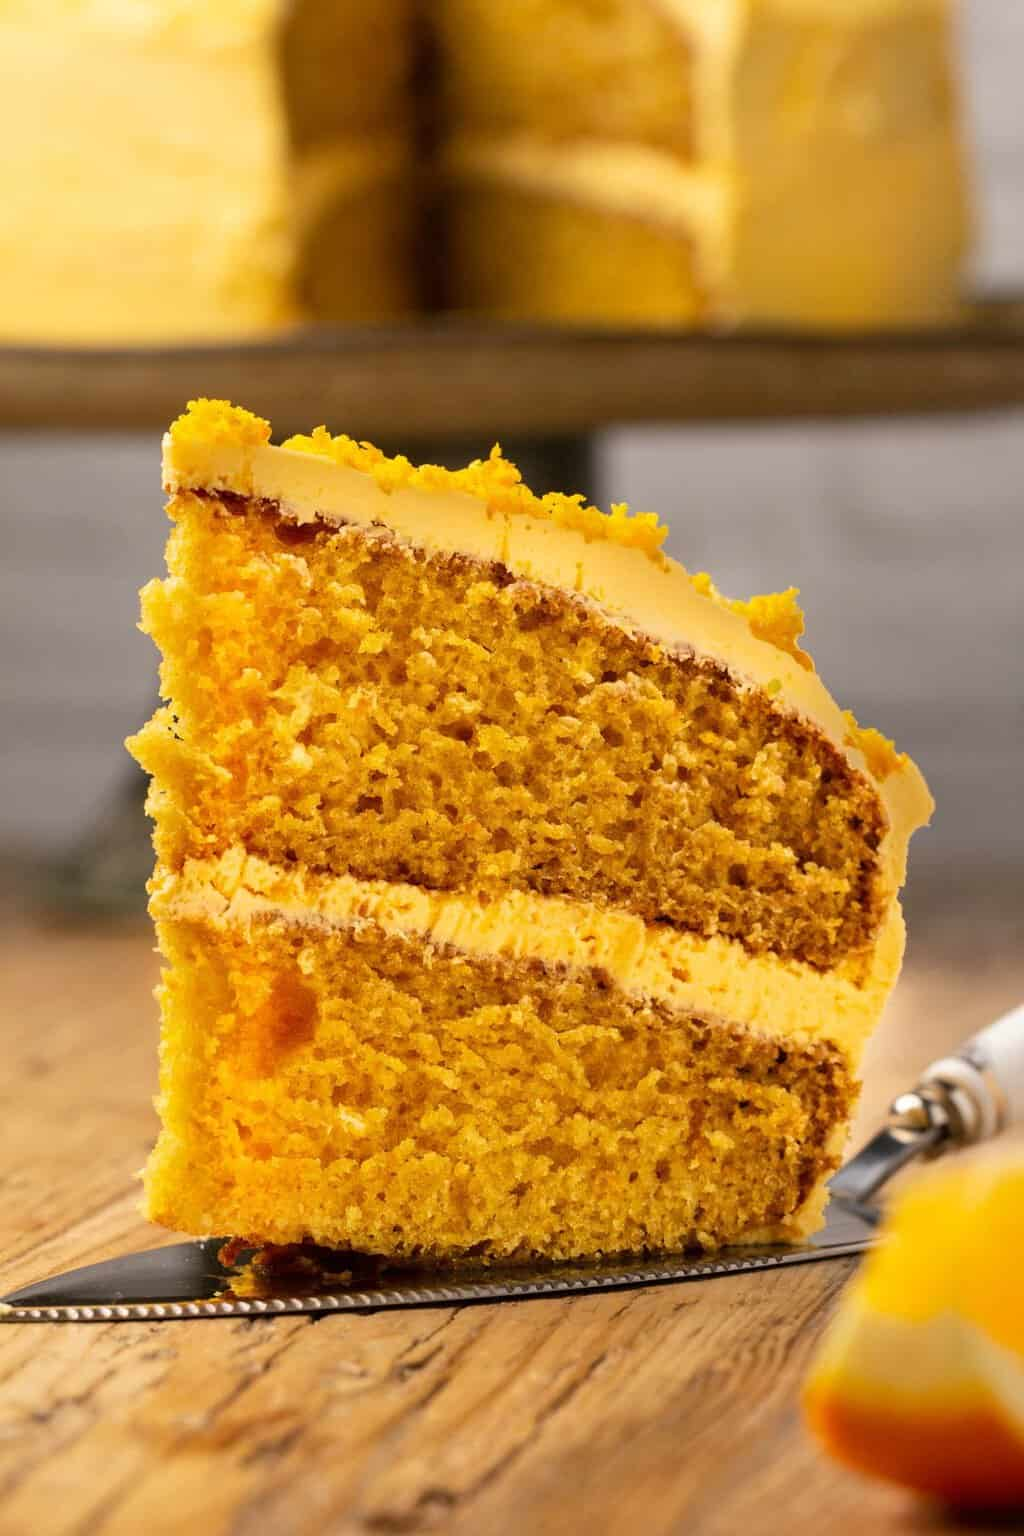 Slice of vegan orange cake on a cake lifter.